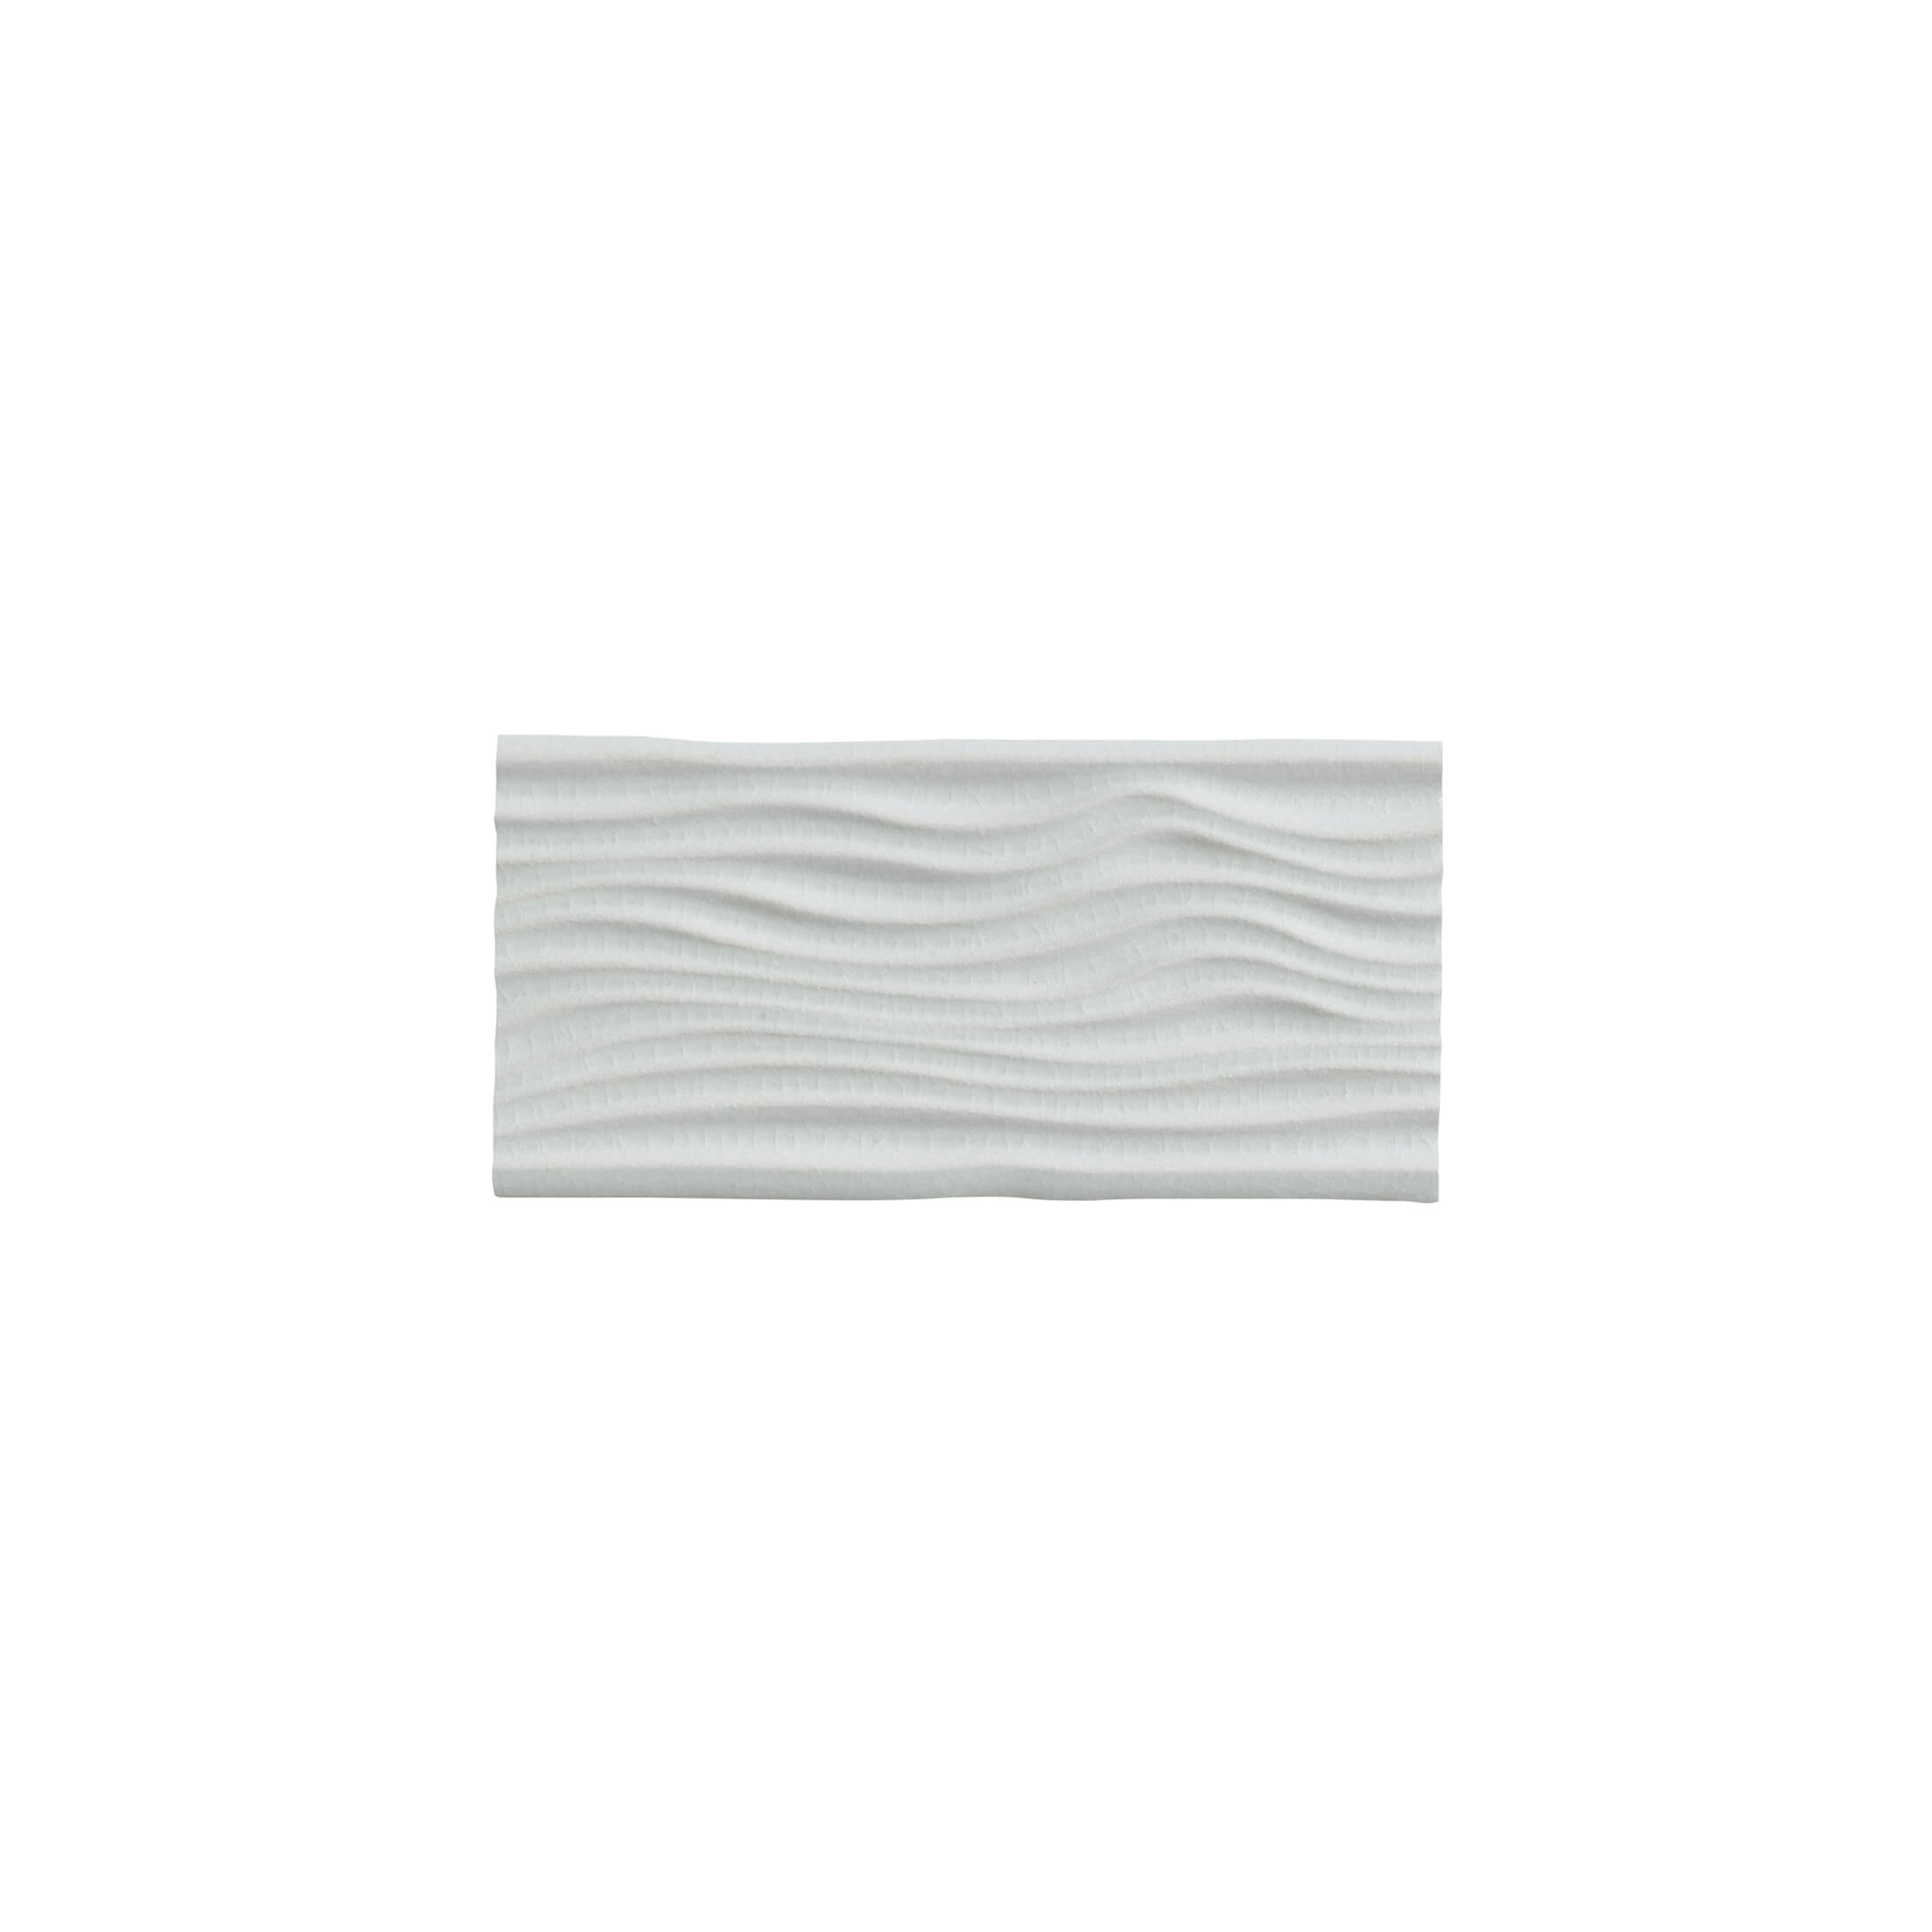 ADEH1023 - LISO WAVES - 7.5 cm X 15 cm